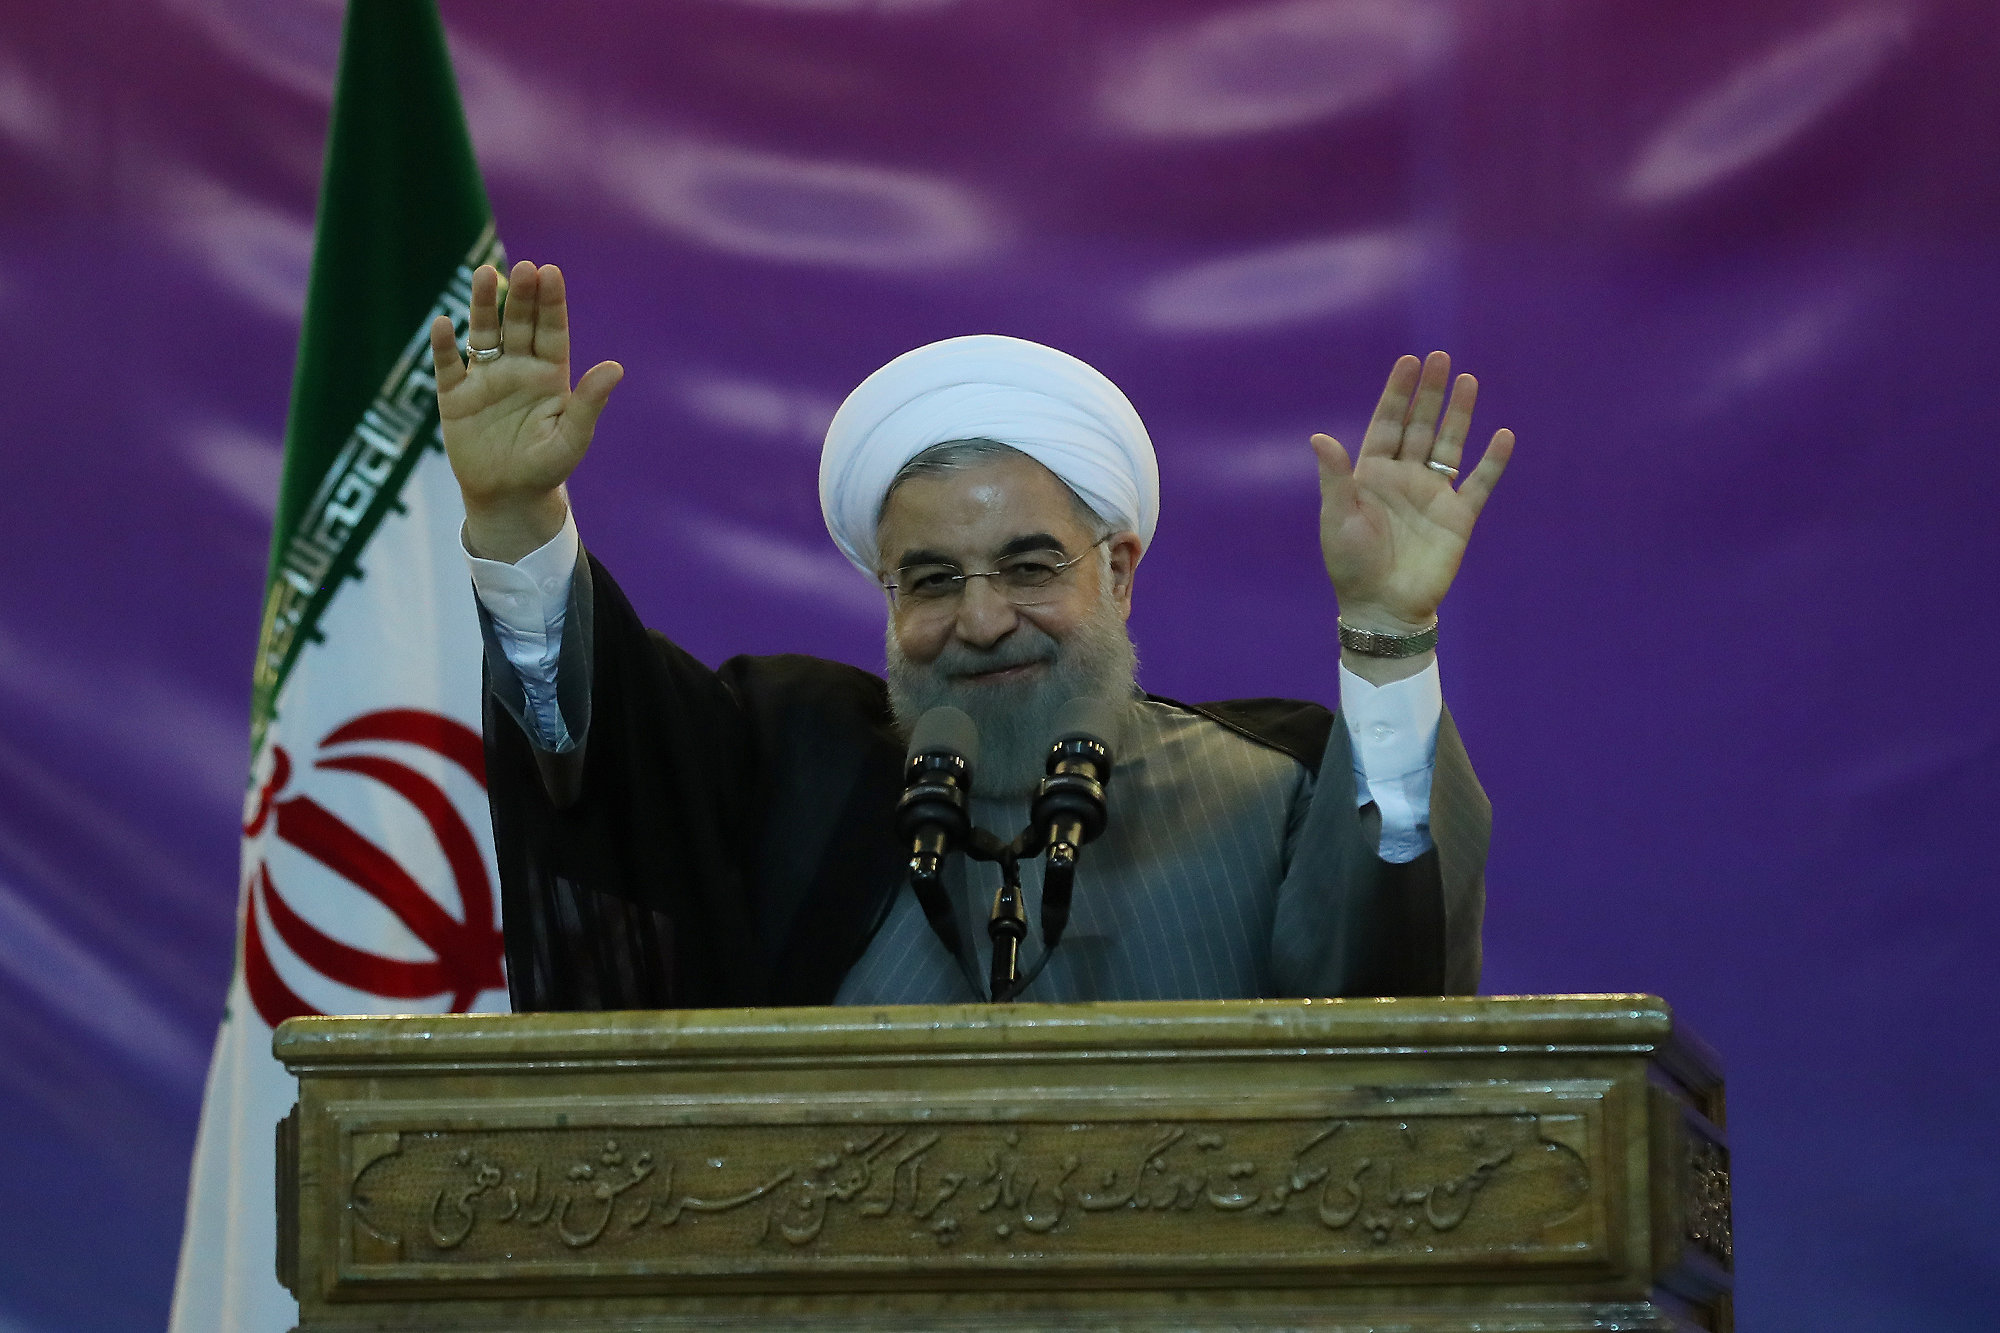 2017 05 04T183802Z 551386168 RC11B2A0F6B0 RTRMADP 3 IRAN ELECTION ROUHANI RIGHTS